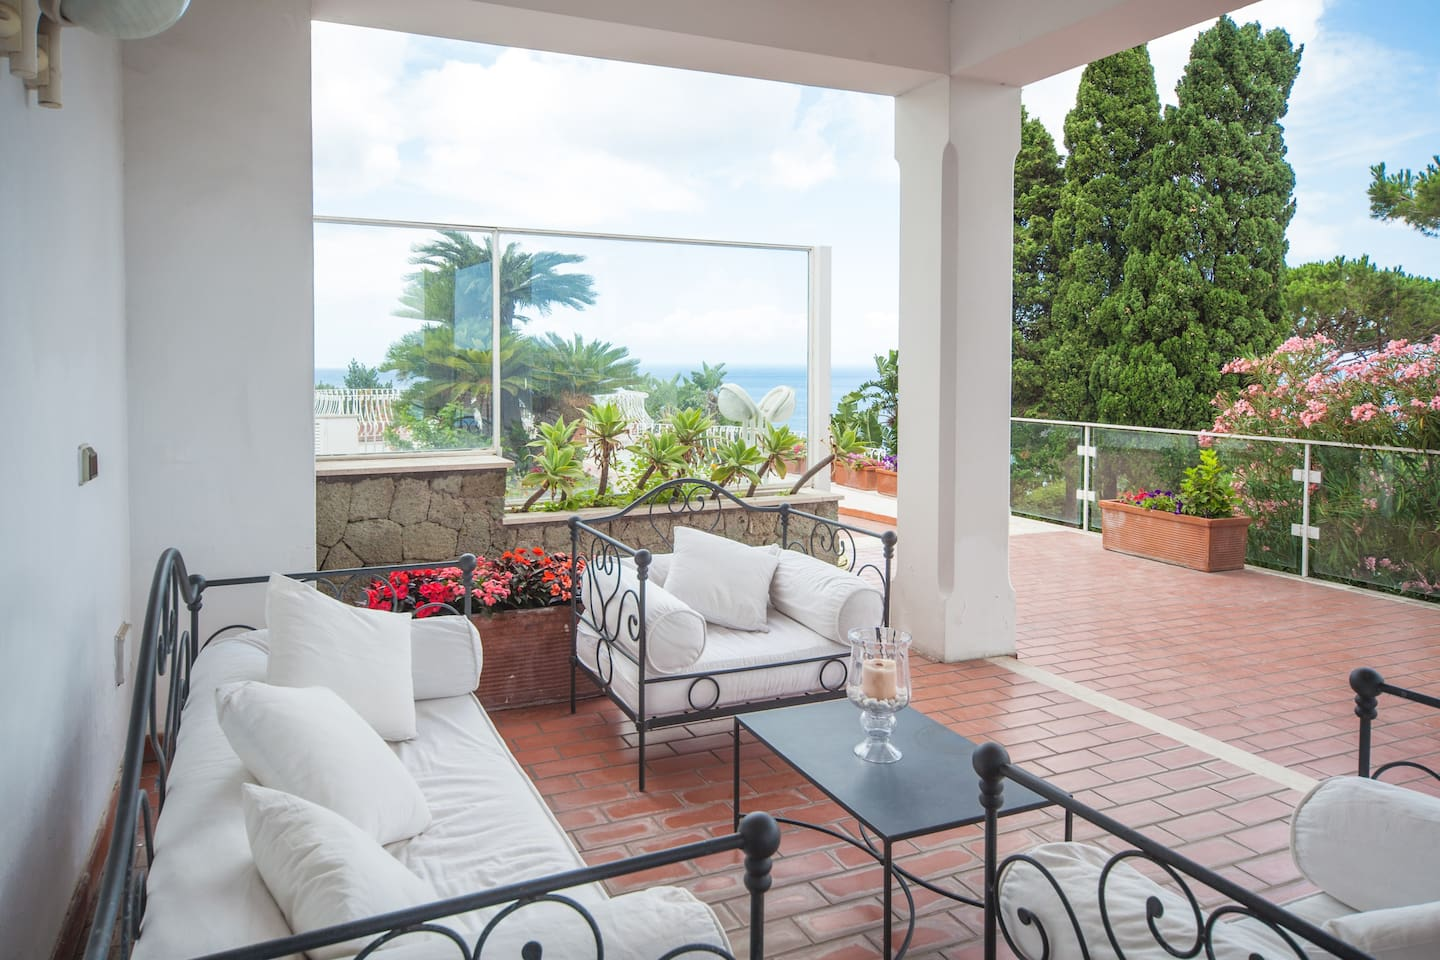 Terrace view by the sea